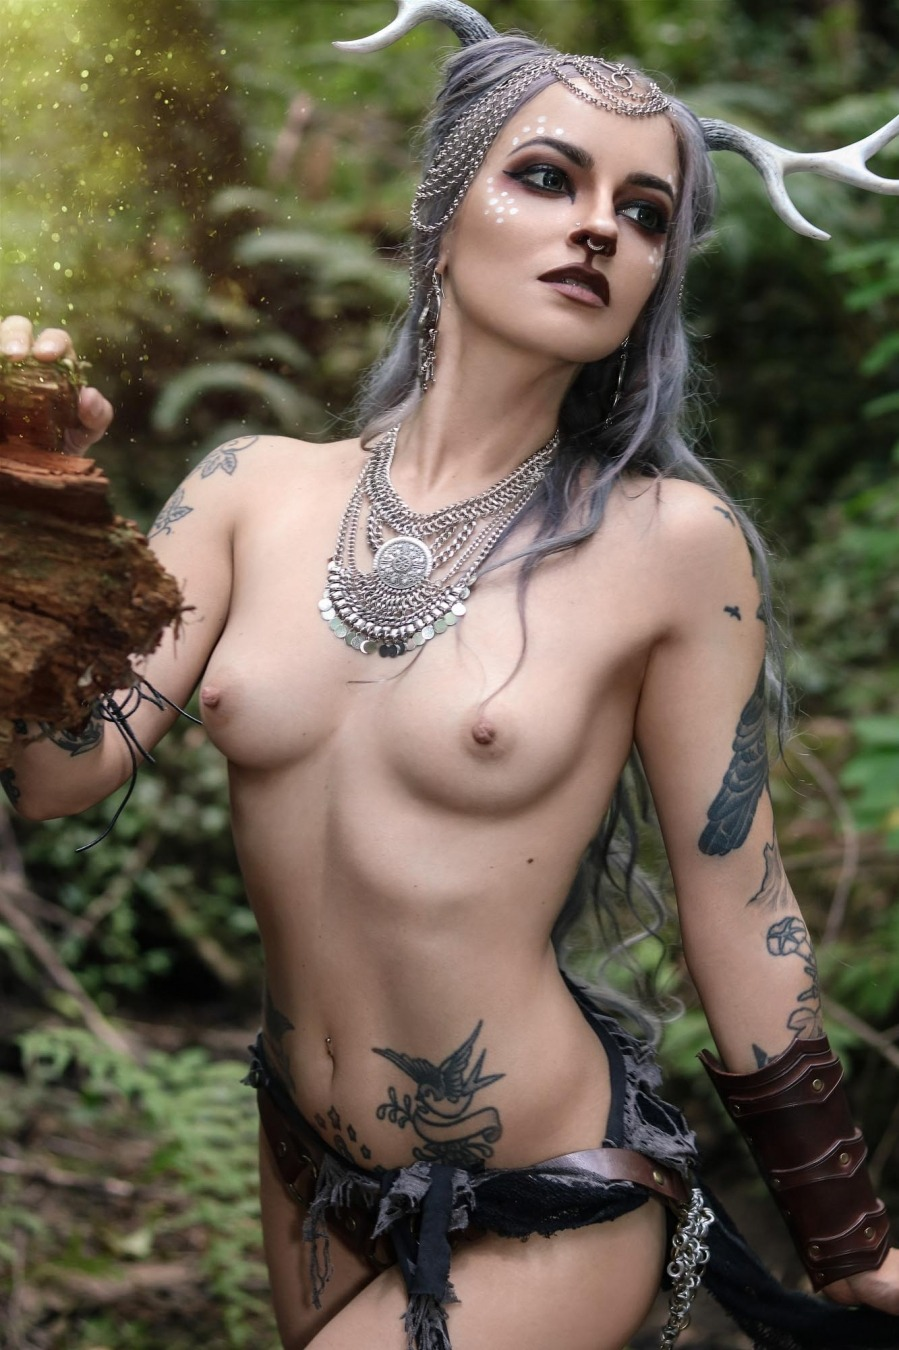 Mage nude